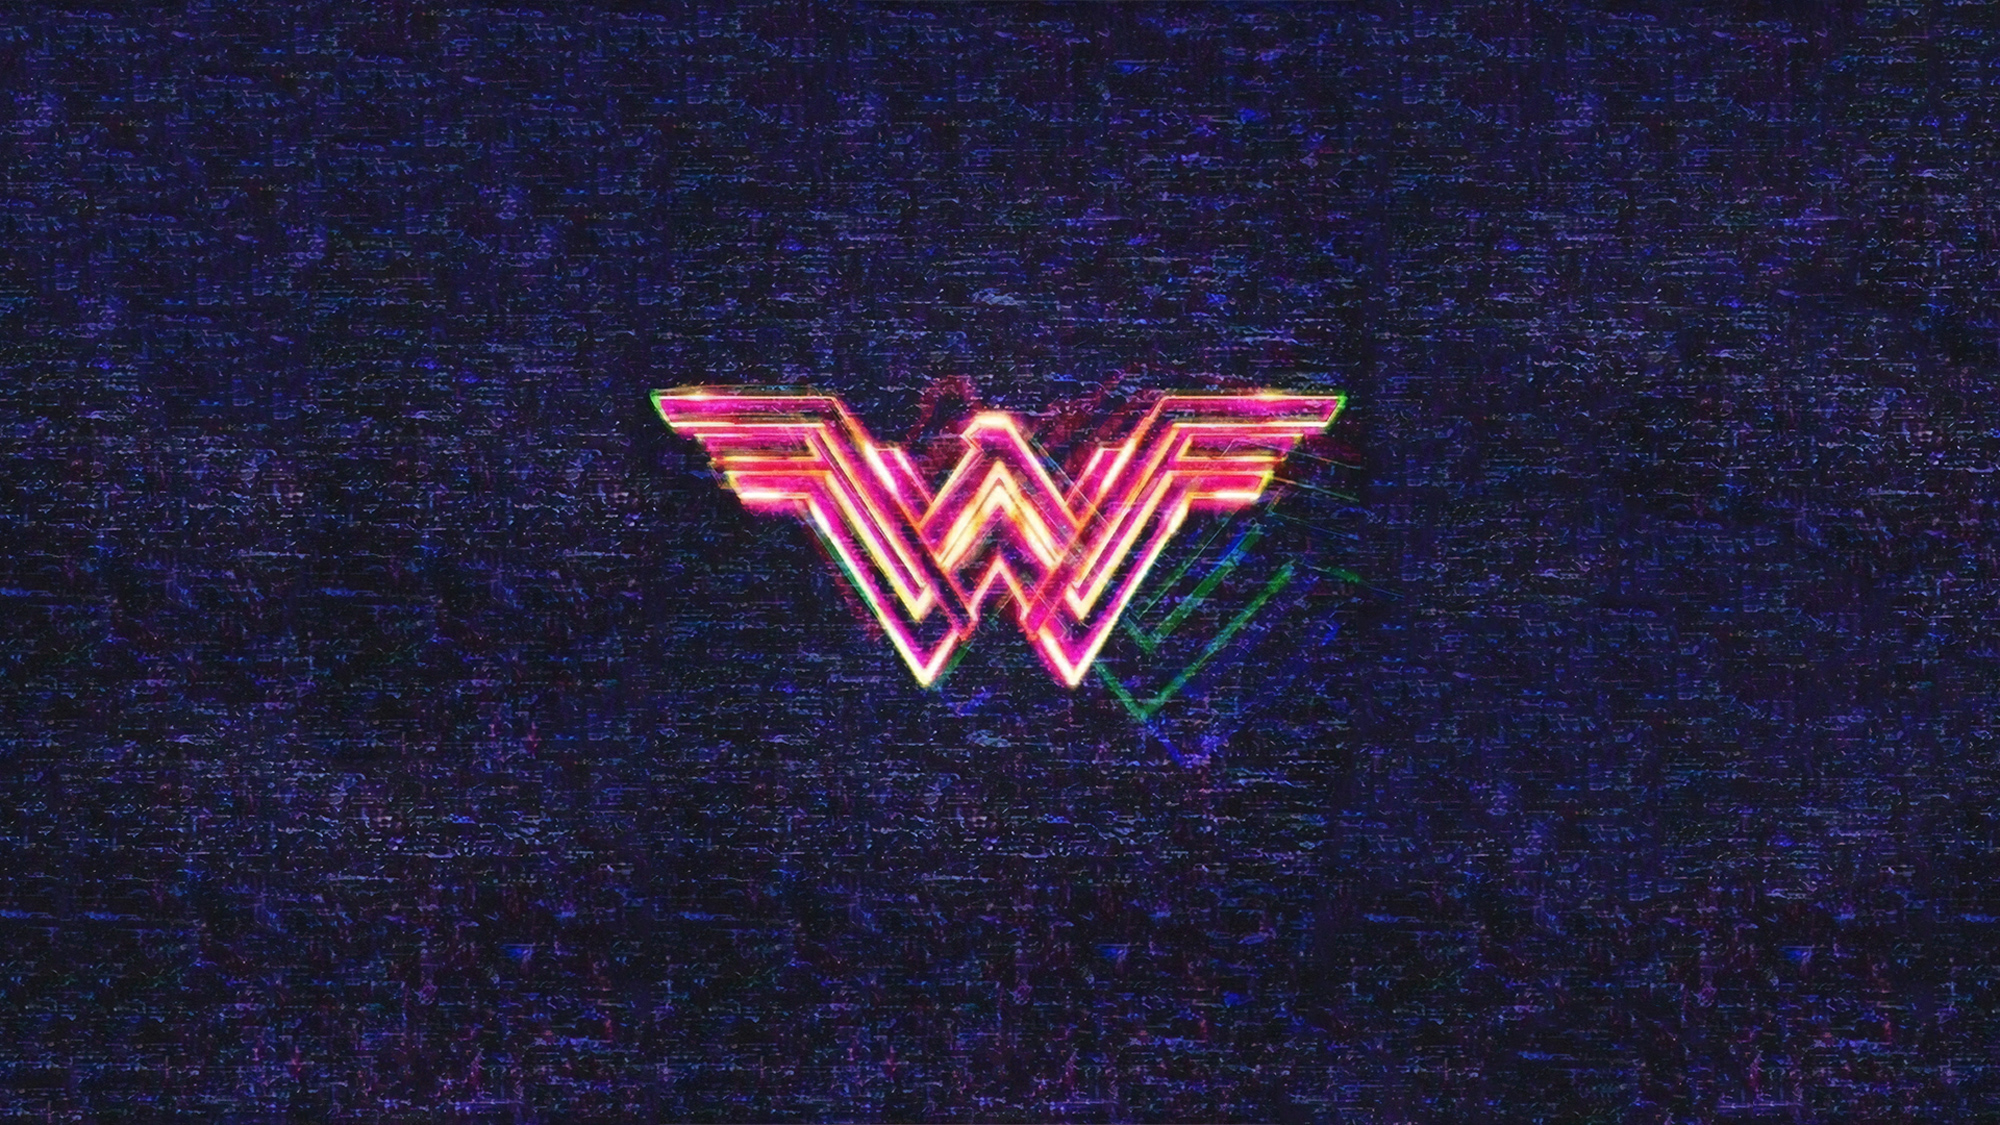 1125x2436 Wonder Woman 1984 Movie 2019 Iphone Xs Iphone 10: 1080x1920 Wonder Woman 1984 Logo Poster Iphone 7,6s,6 Plus